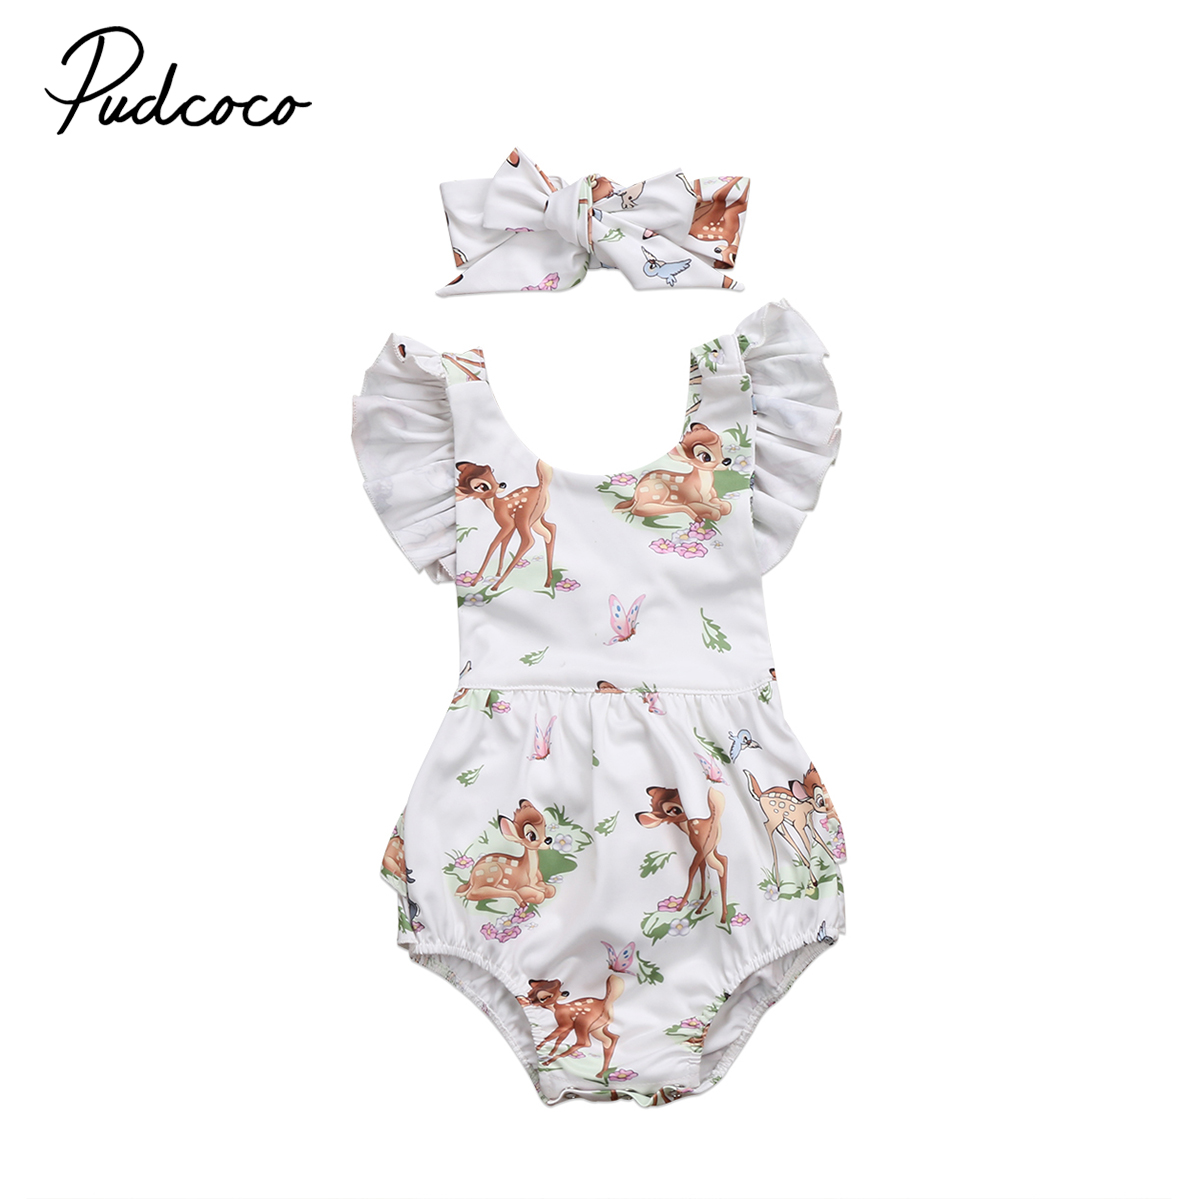 baby Clothing Toddler Infant Baby Girl Deer Sleeveless Romper Jumpsuit baby Cotton Clothes Outfit 0-2Y 2017 new sequins baby girl romper clothes summer sleeveless tutu skirted toddler kids jumpsuit outfit sunsuit princess costume